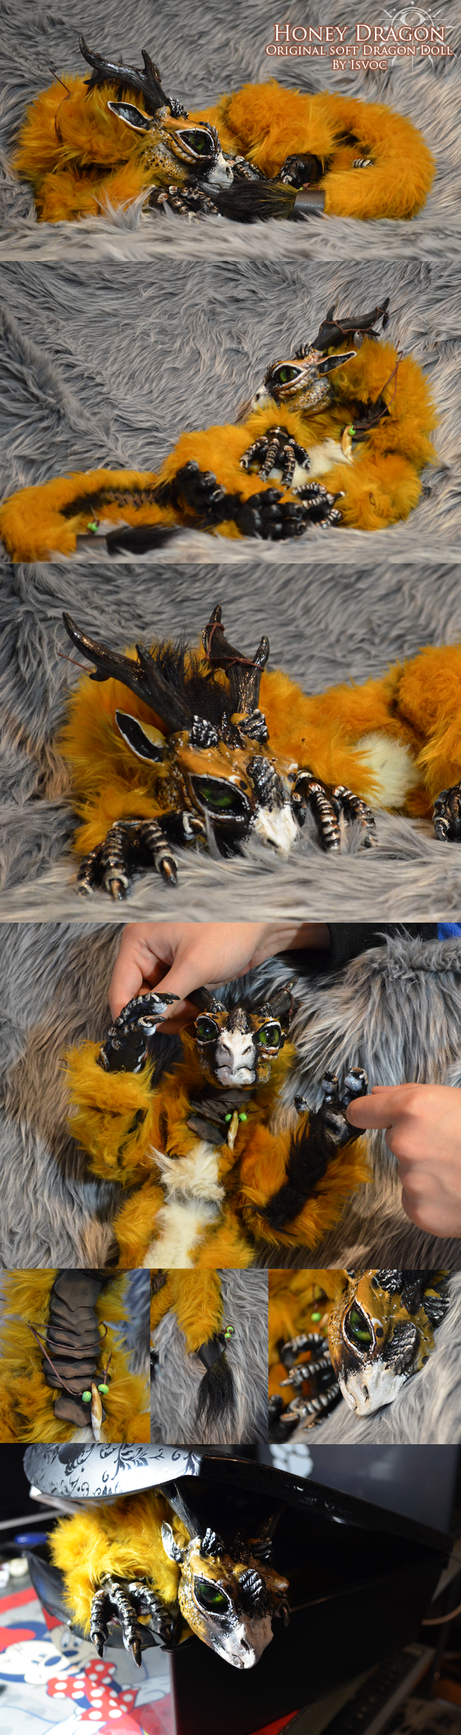 Honey Dragon Doll by Isvoc